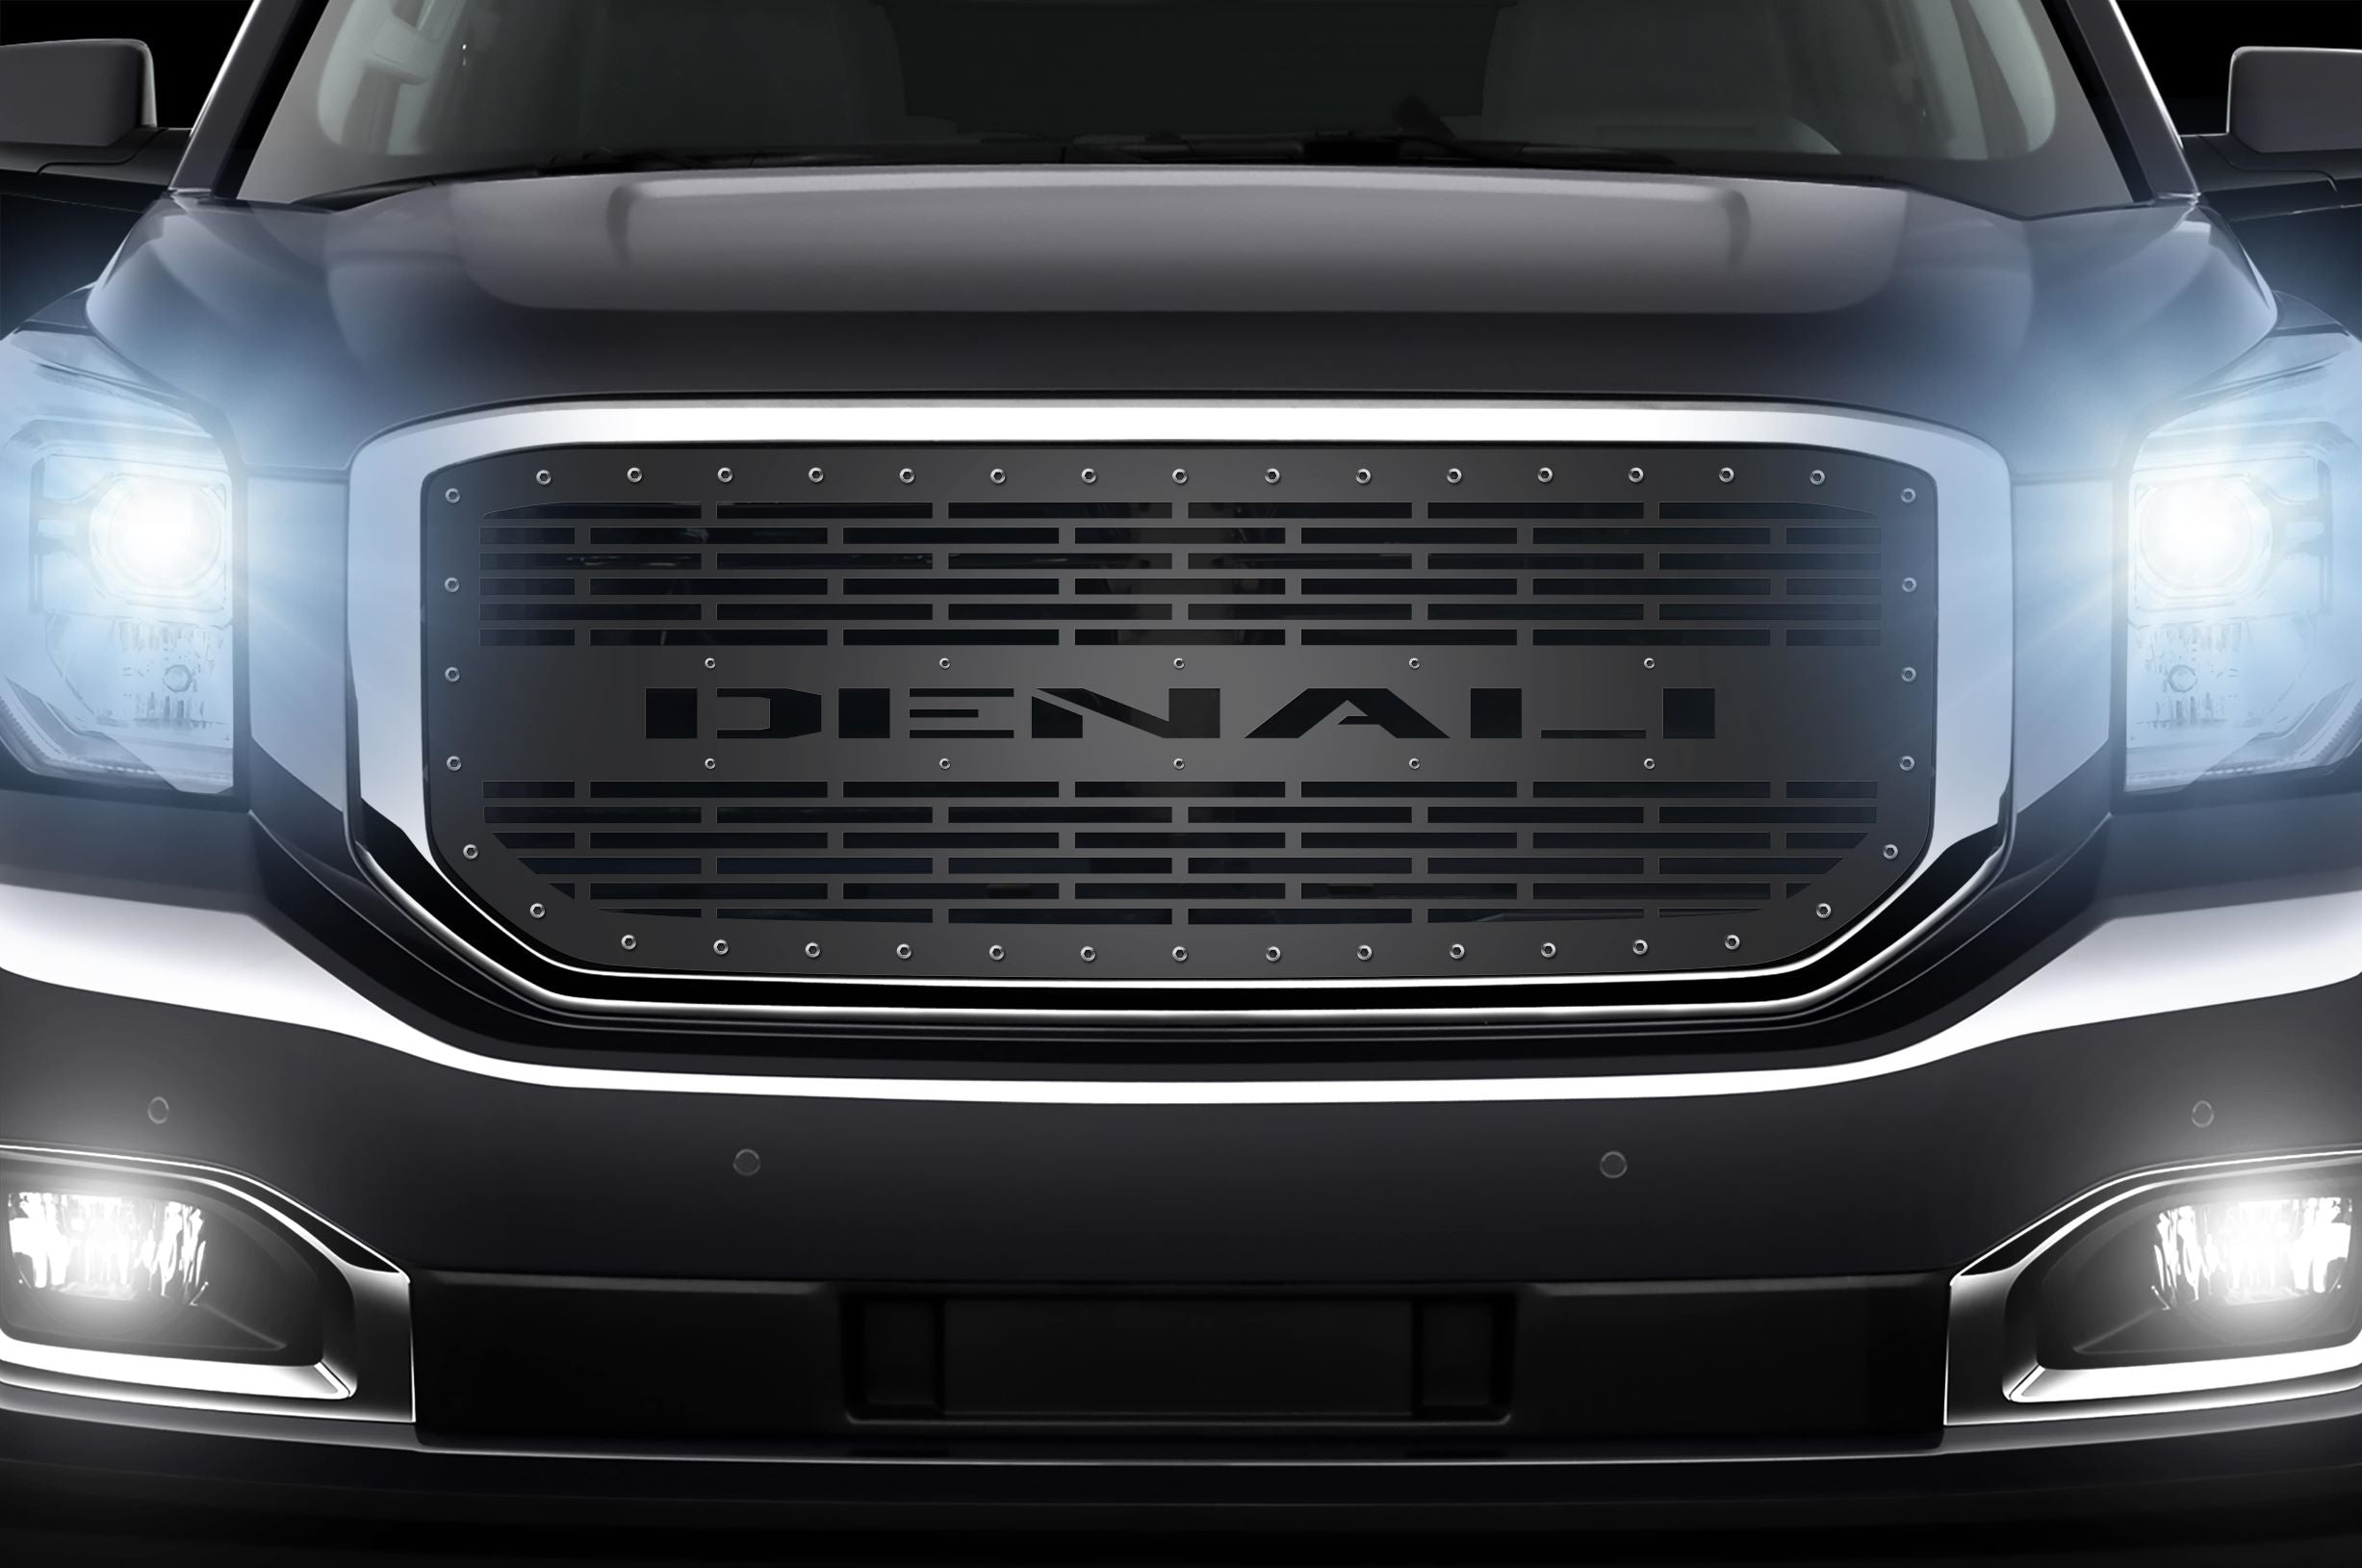 1 Piece Steel Grille for GMC Yukon Denali 2015-2020 -Denali